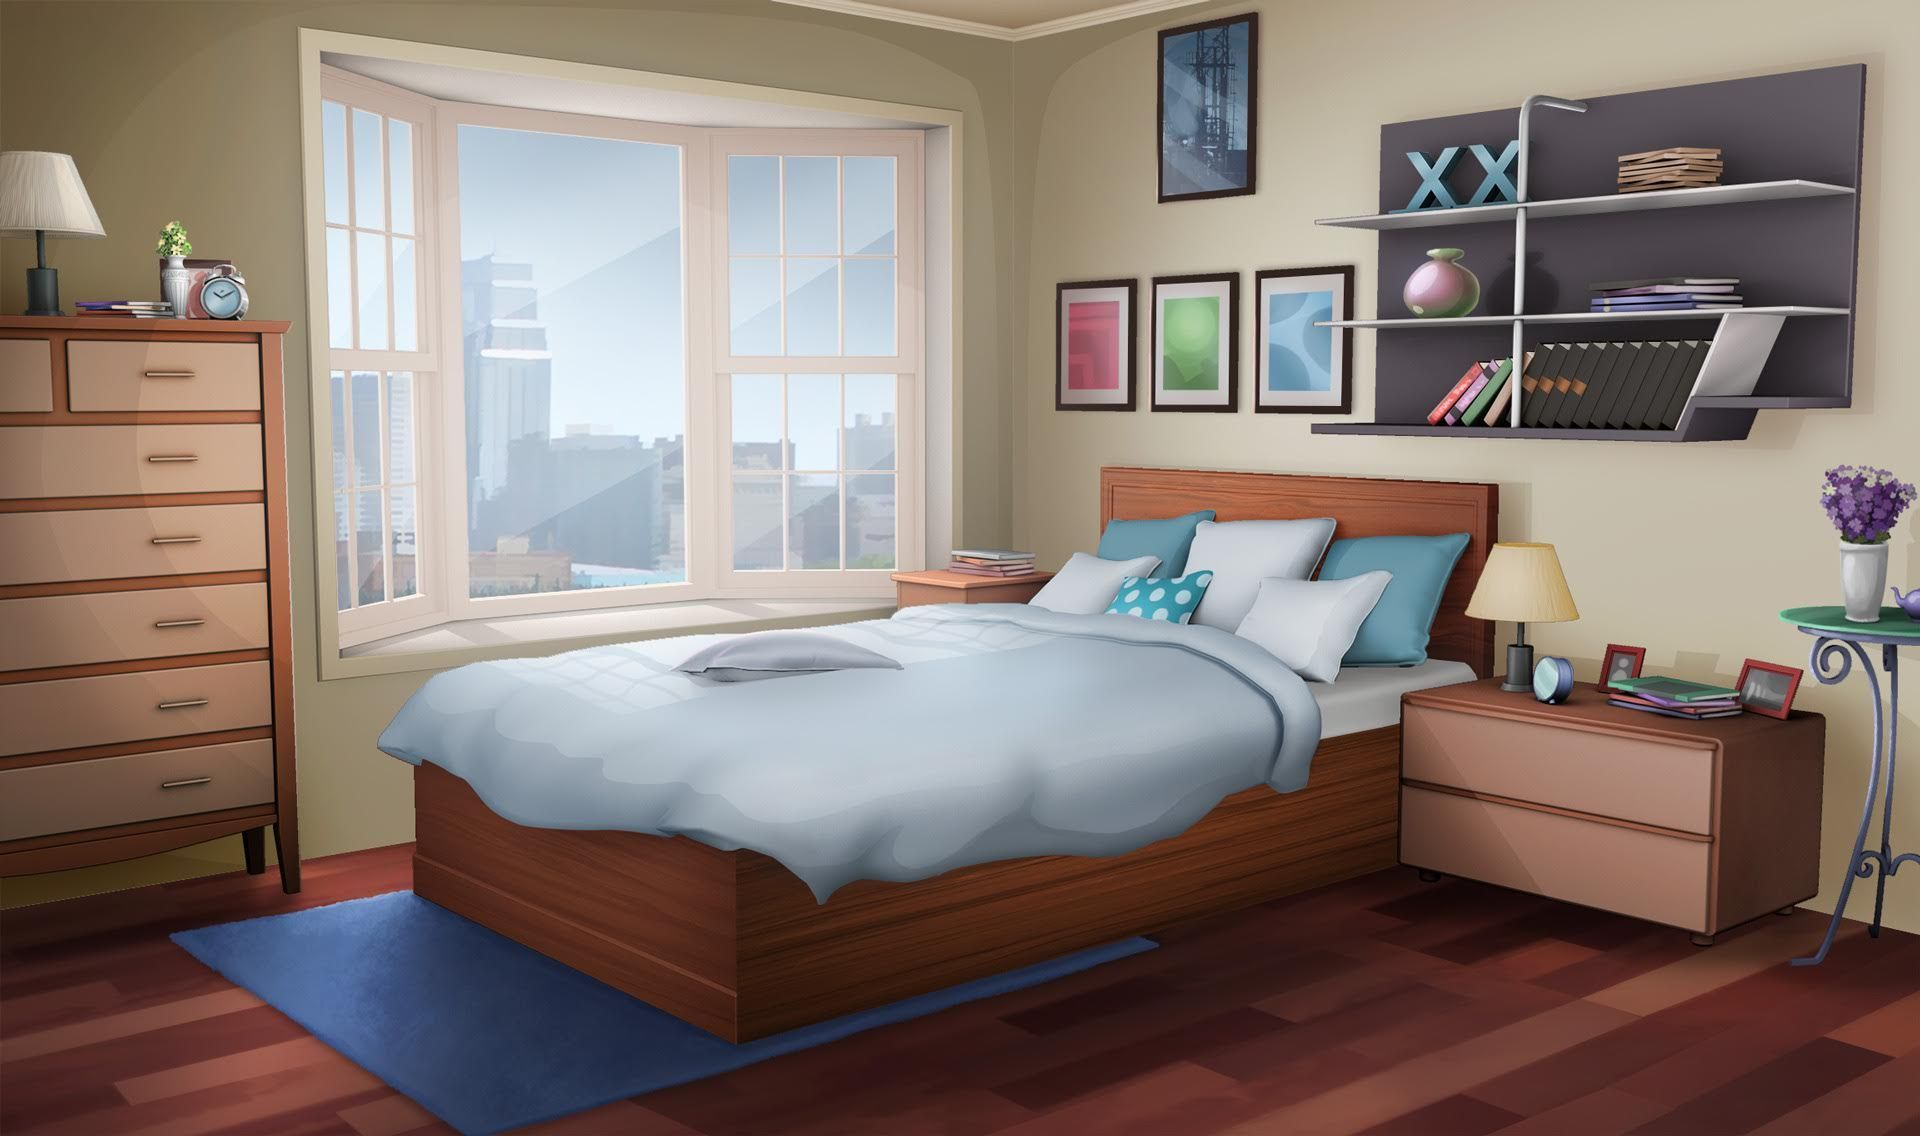 An anime bedroom